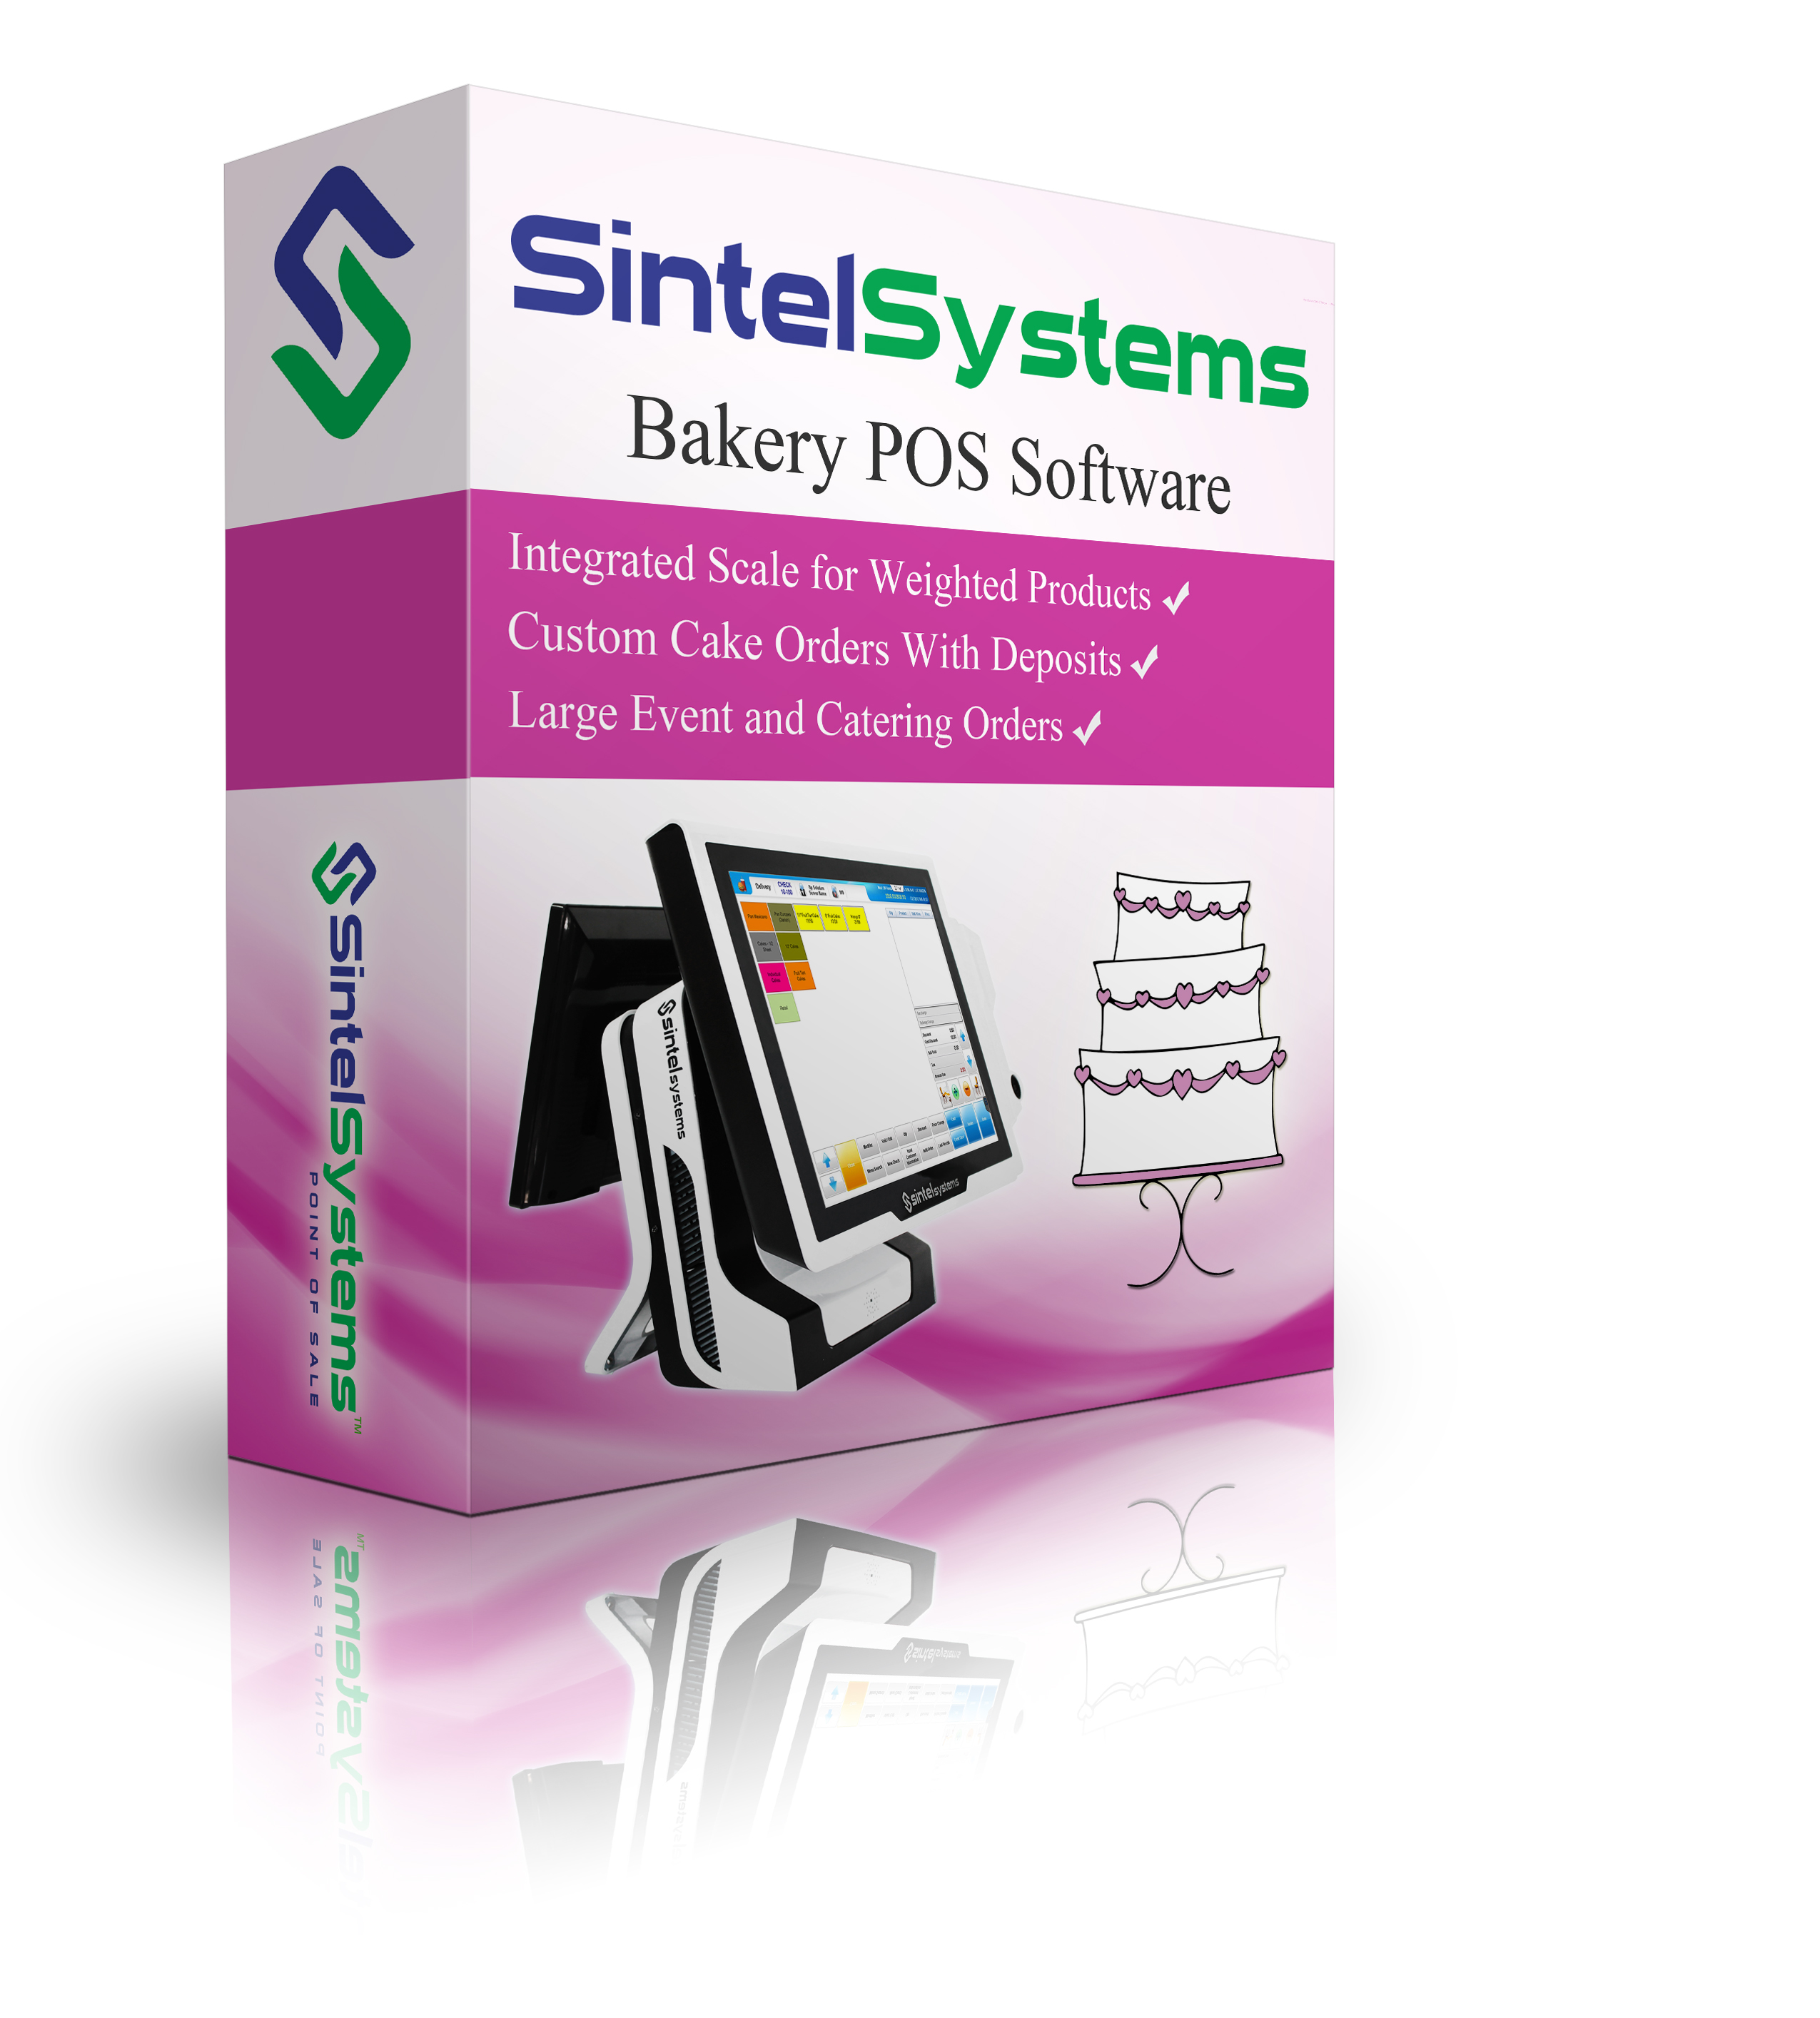 Bakery POS Software